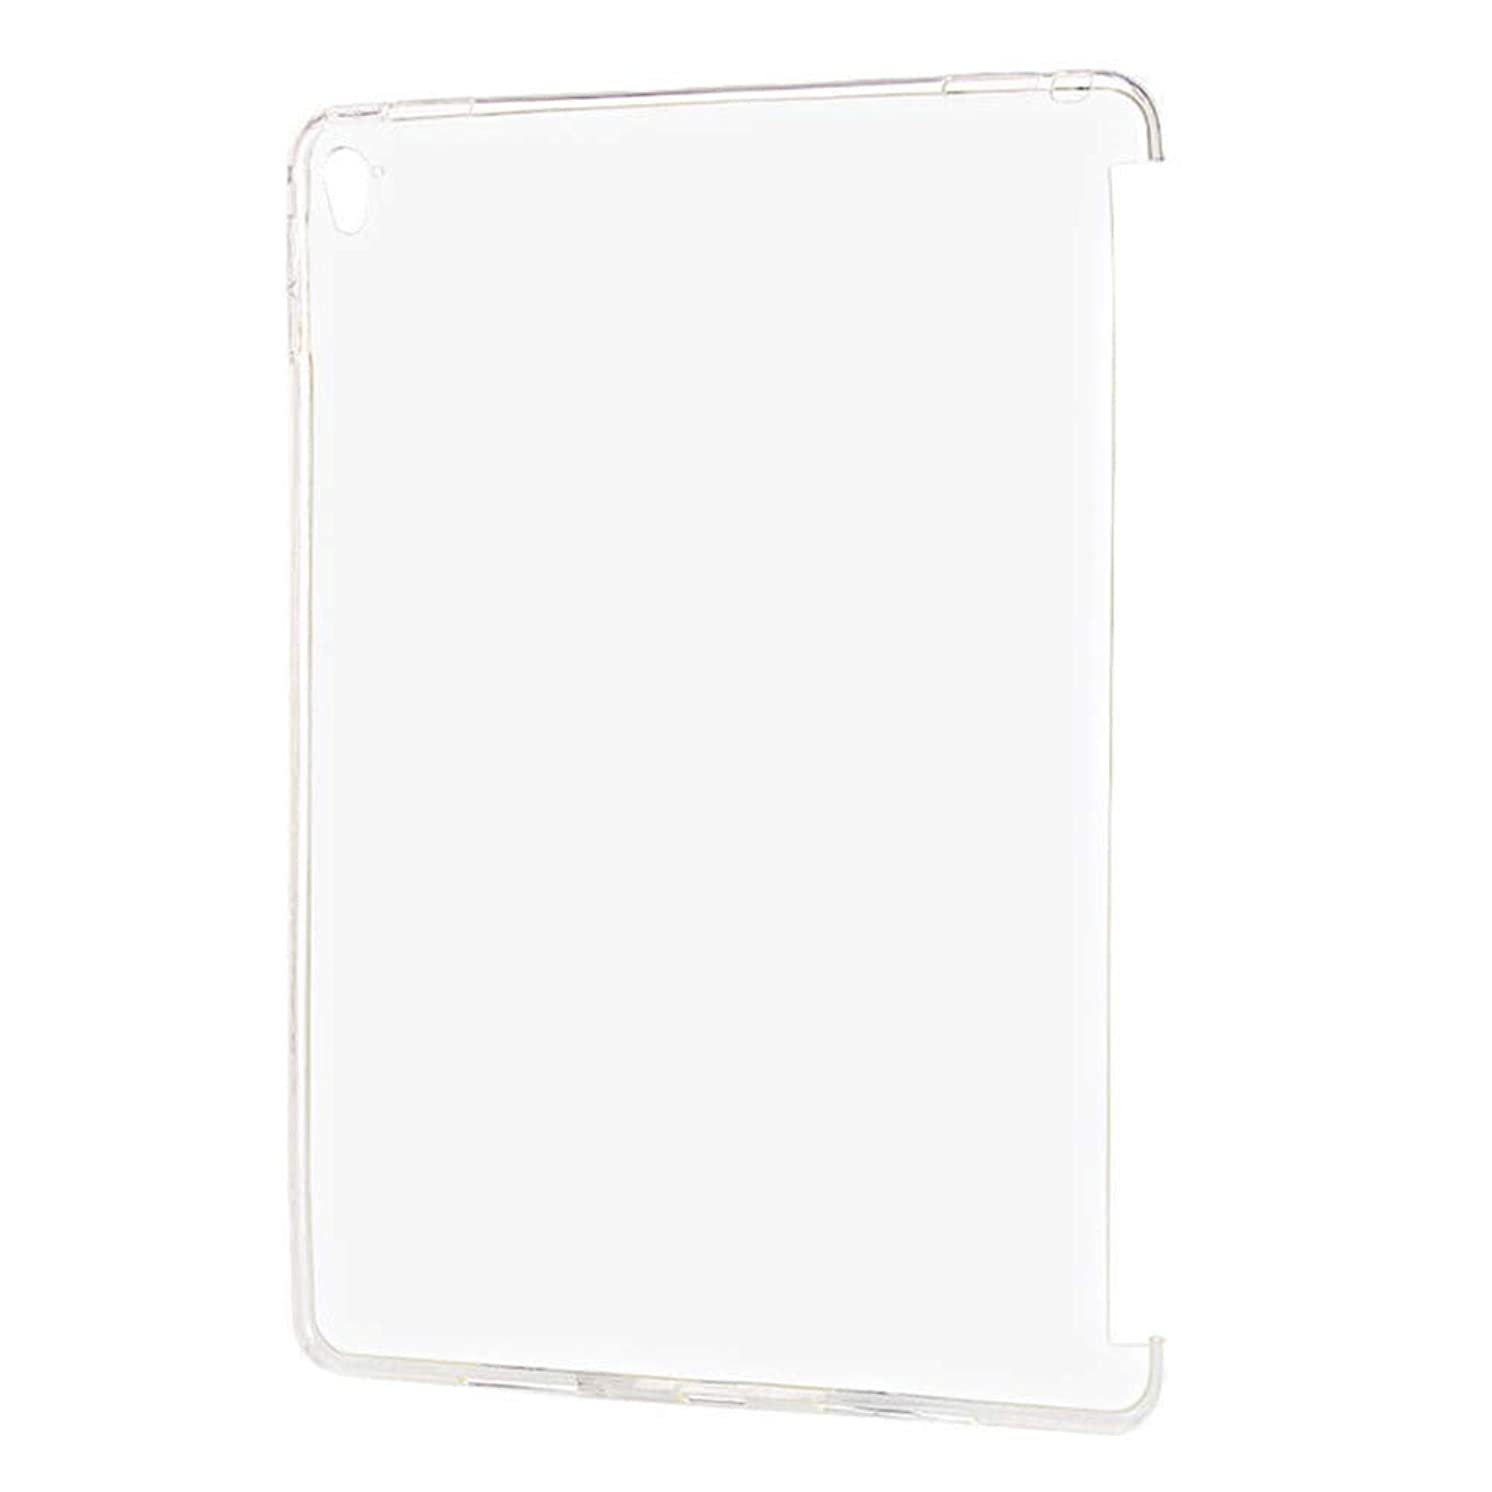 shiYsRL Protective Cover for iPad,Clear Ultra Thin TPU Soft Cover Skin Case for iPad Pro 9.7 iPad Pro 10.5 2017 Clear for iPad 9.7 2017